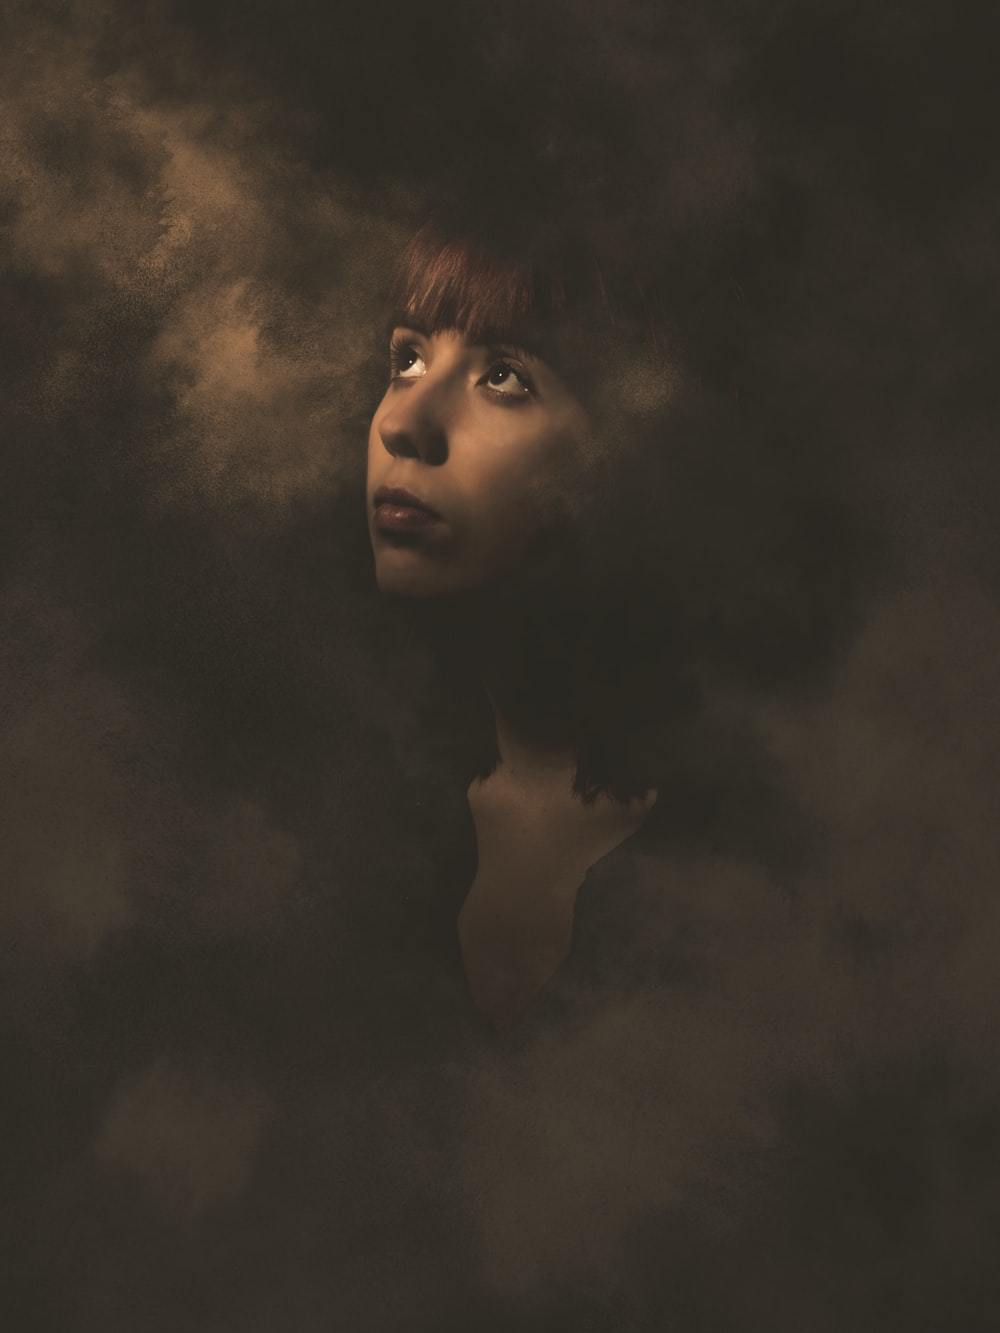 woman surrounded by smoke illustration